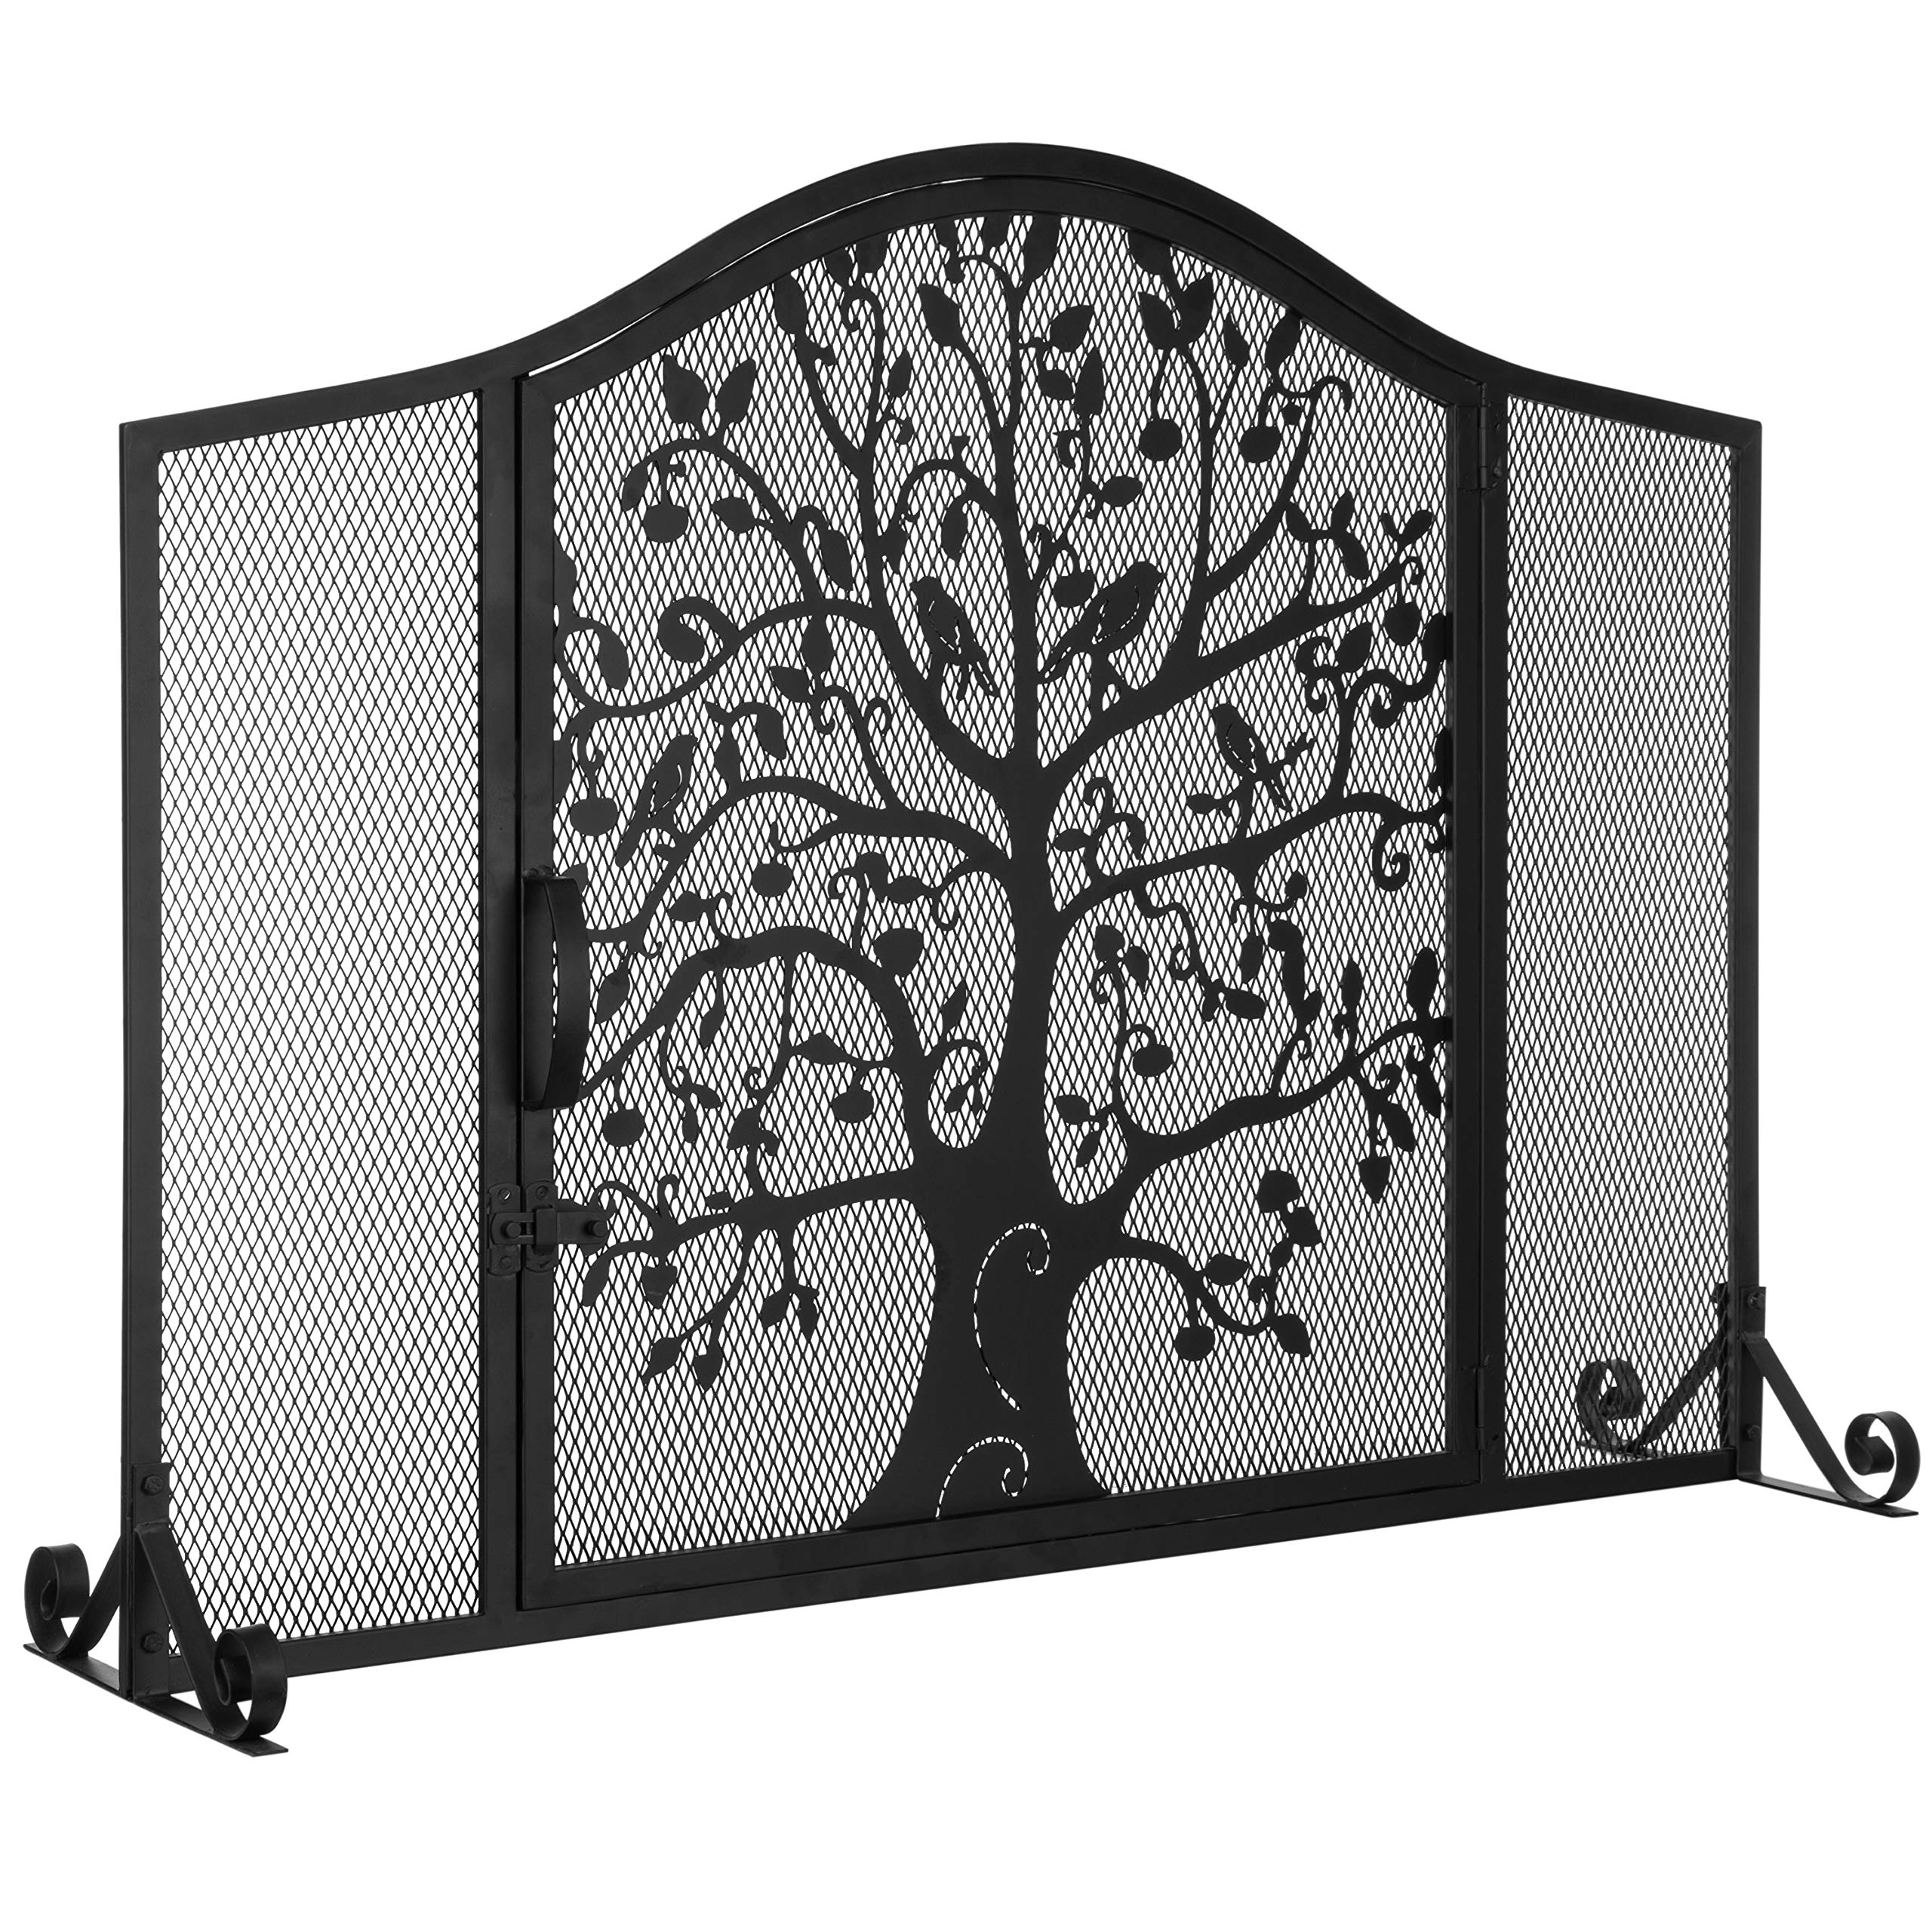 MyGift Black Wrought Iron Fireplace Screen Door with Silhouette Tree & Bird Design by MyGift